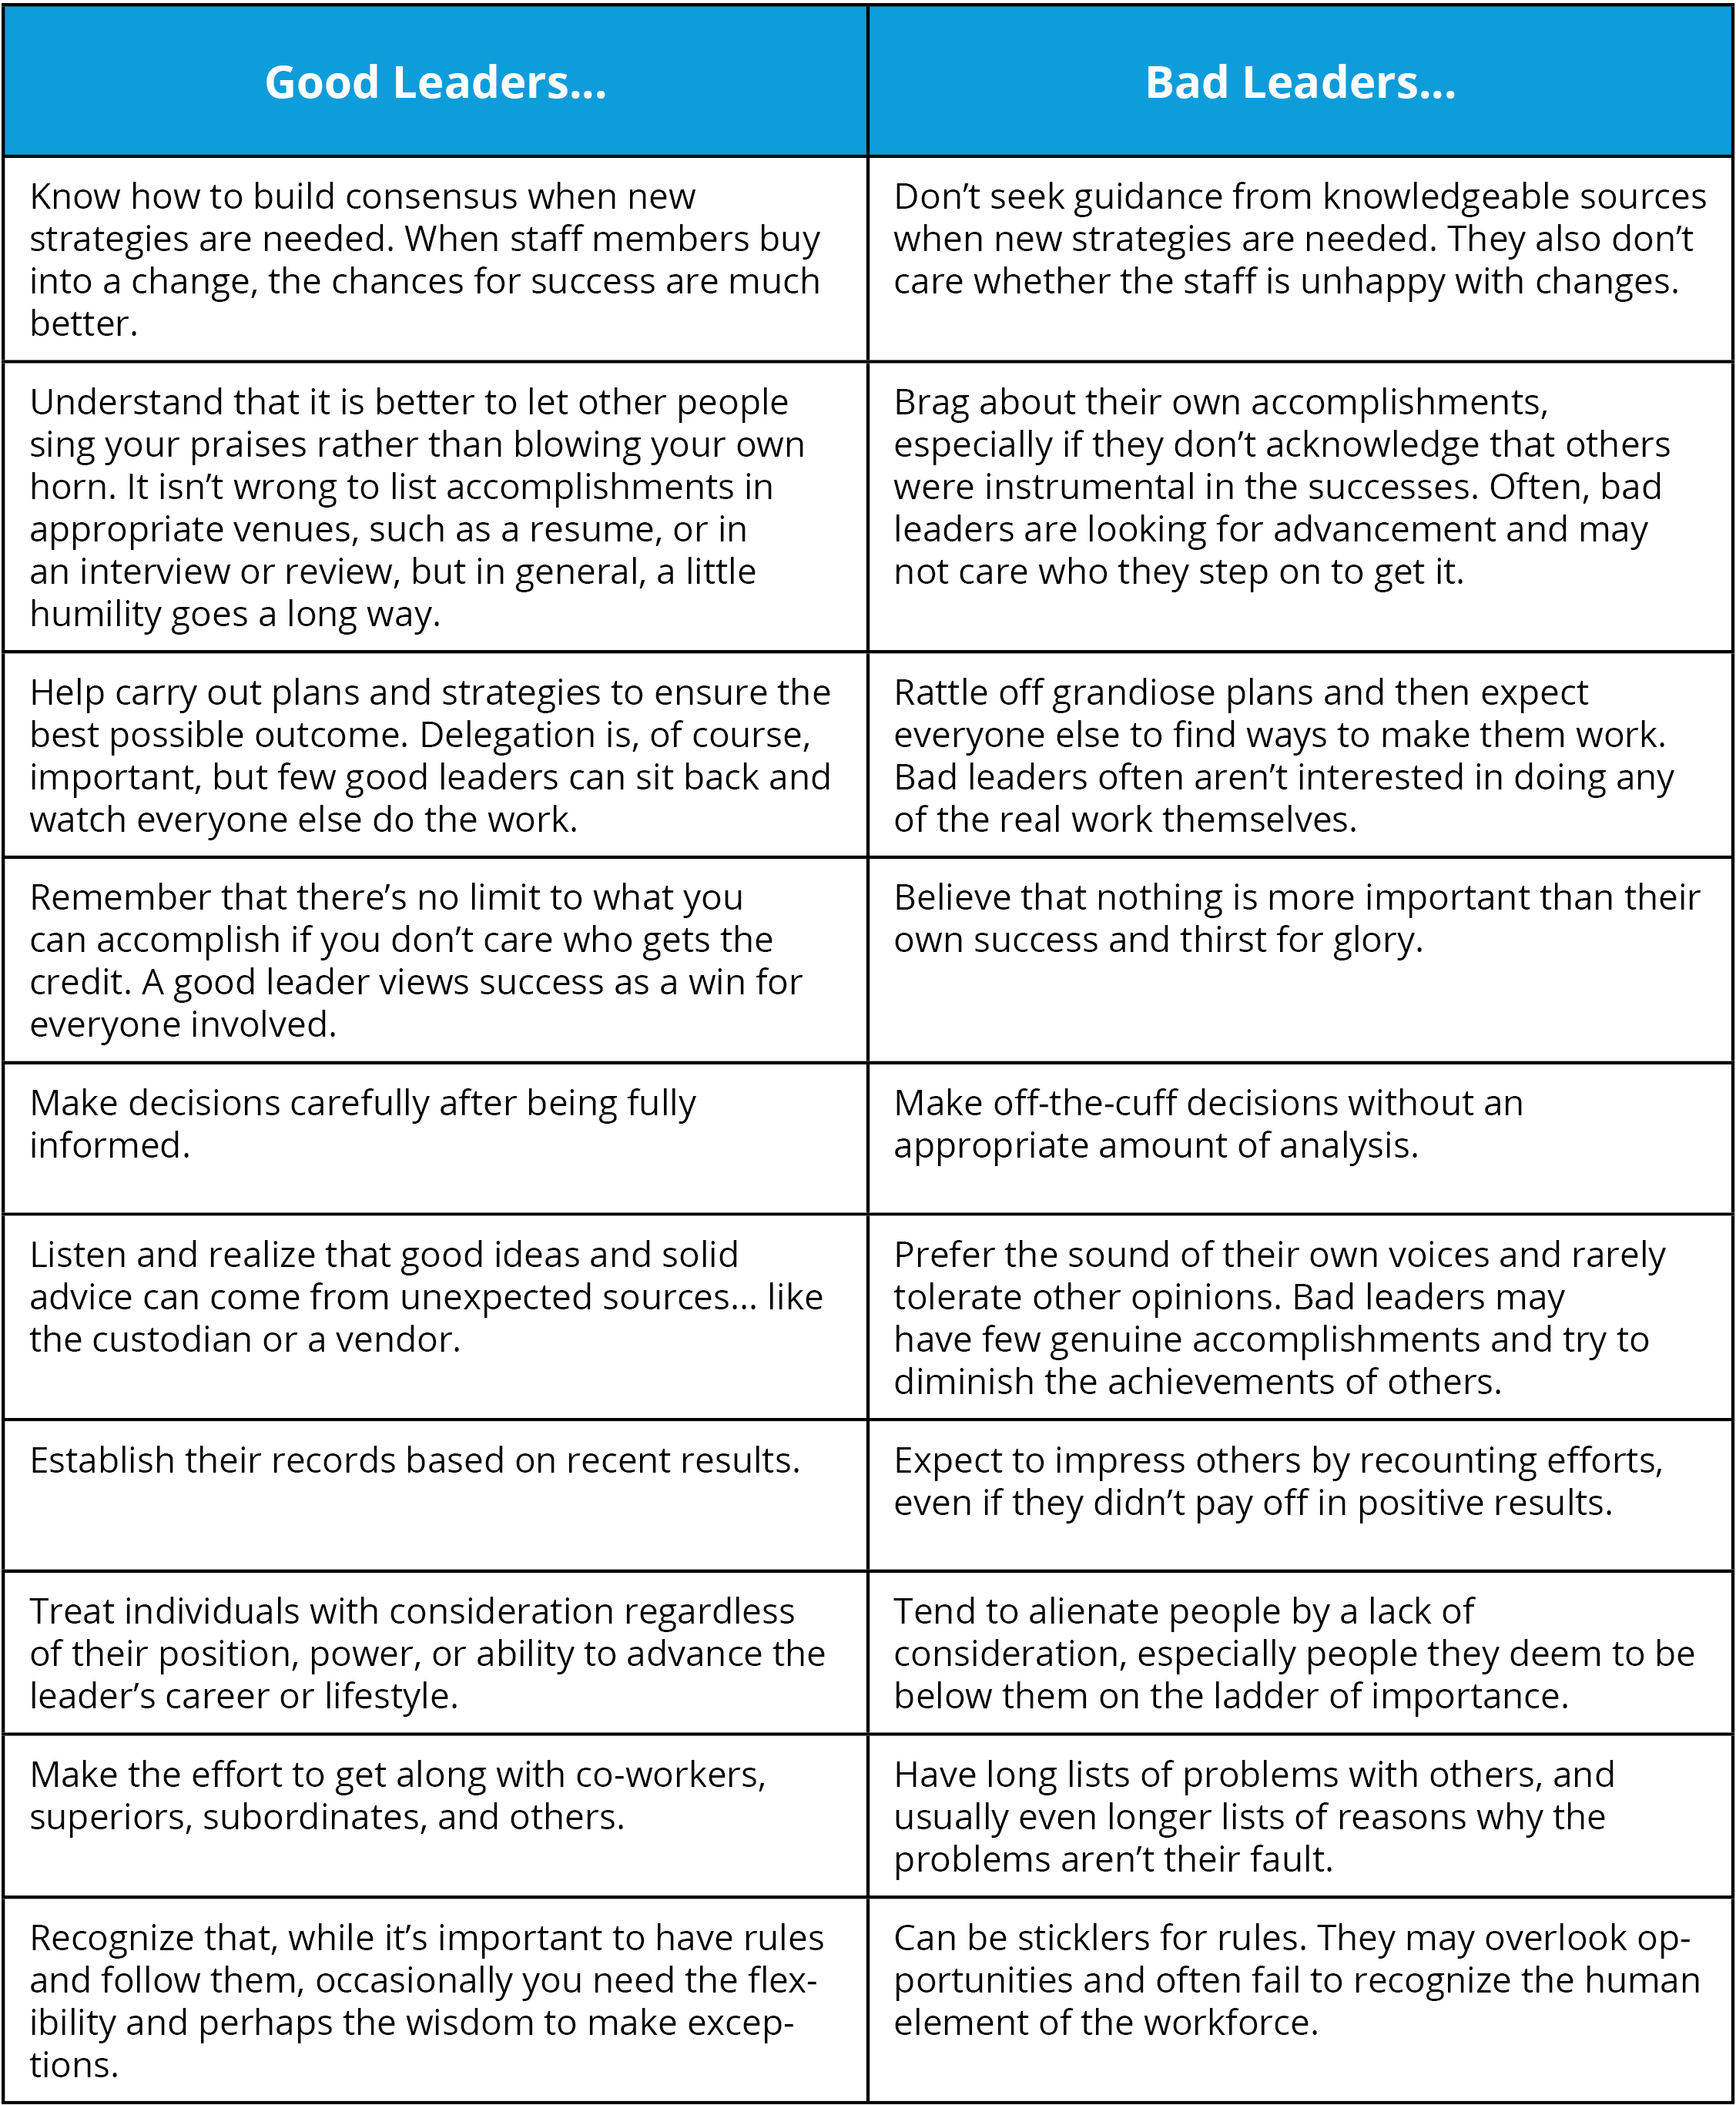 Good vs. Bad Leaders table